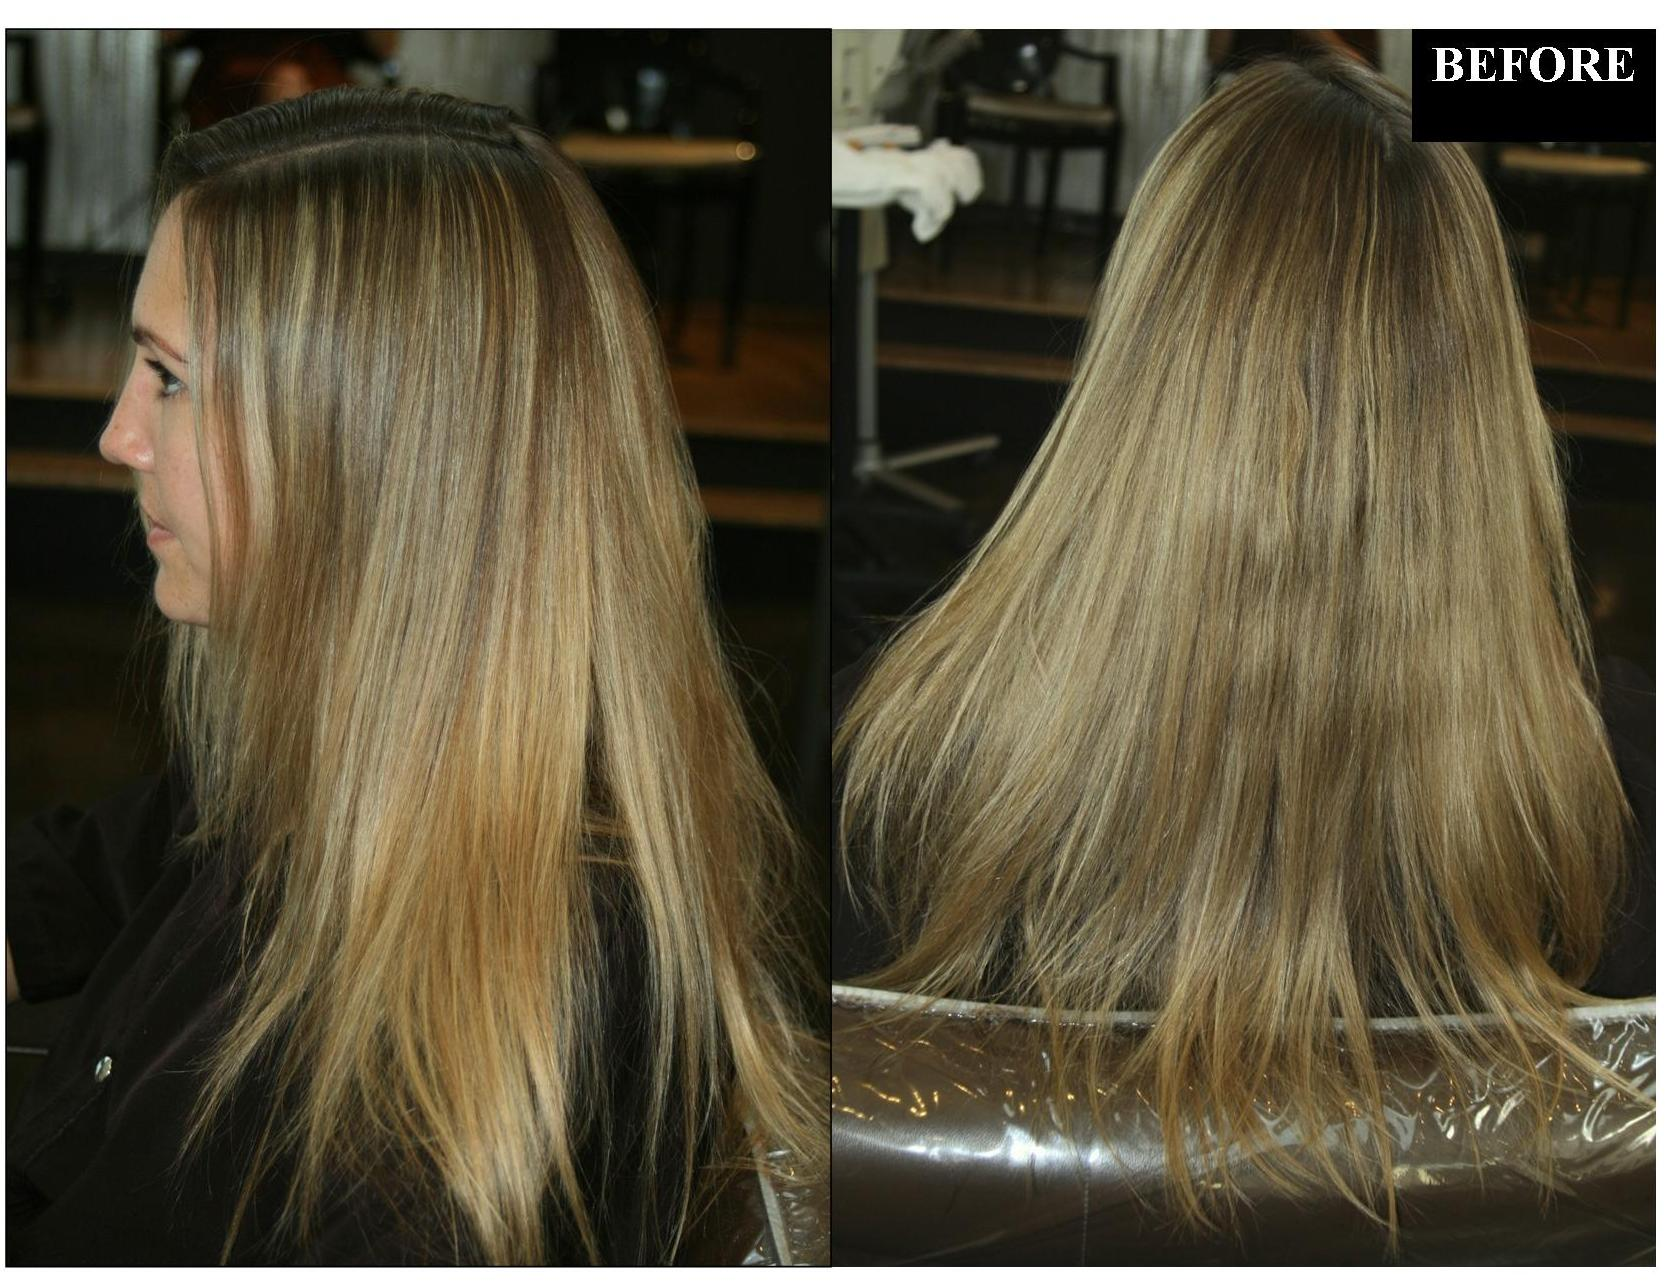 Highlights for sandy blonde hair hairs picture gallery highlights for sandy blonde hair gallery pmusecretfo Images